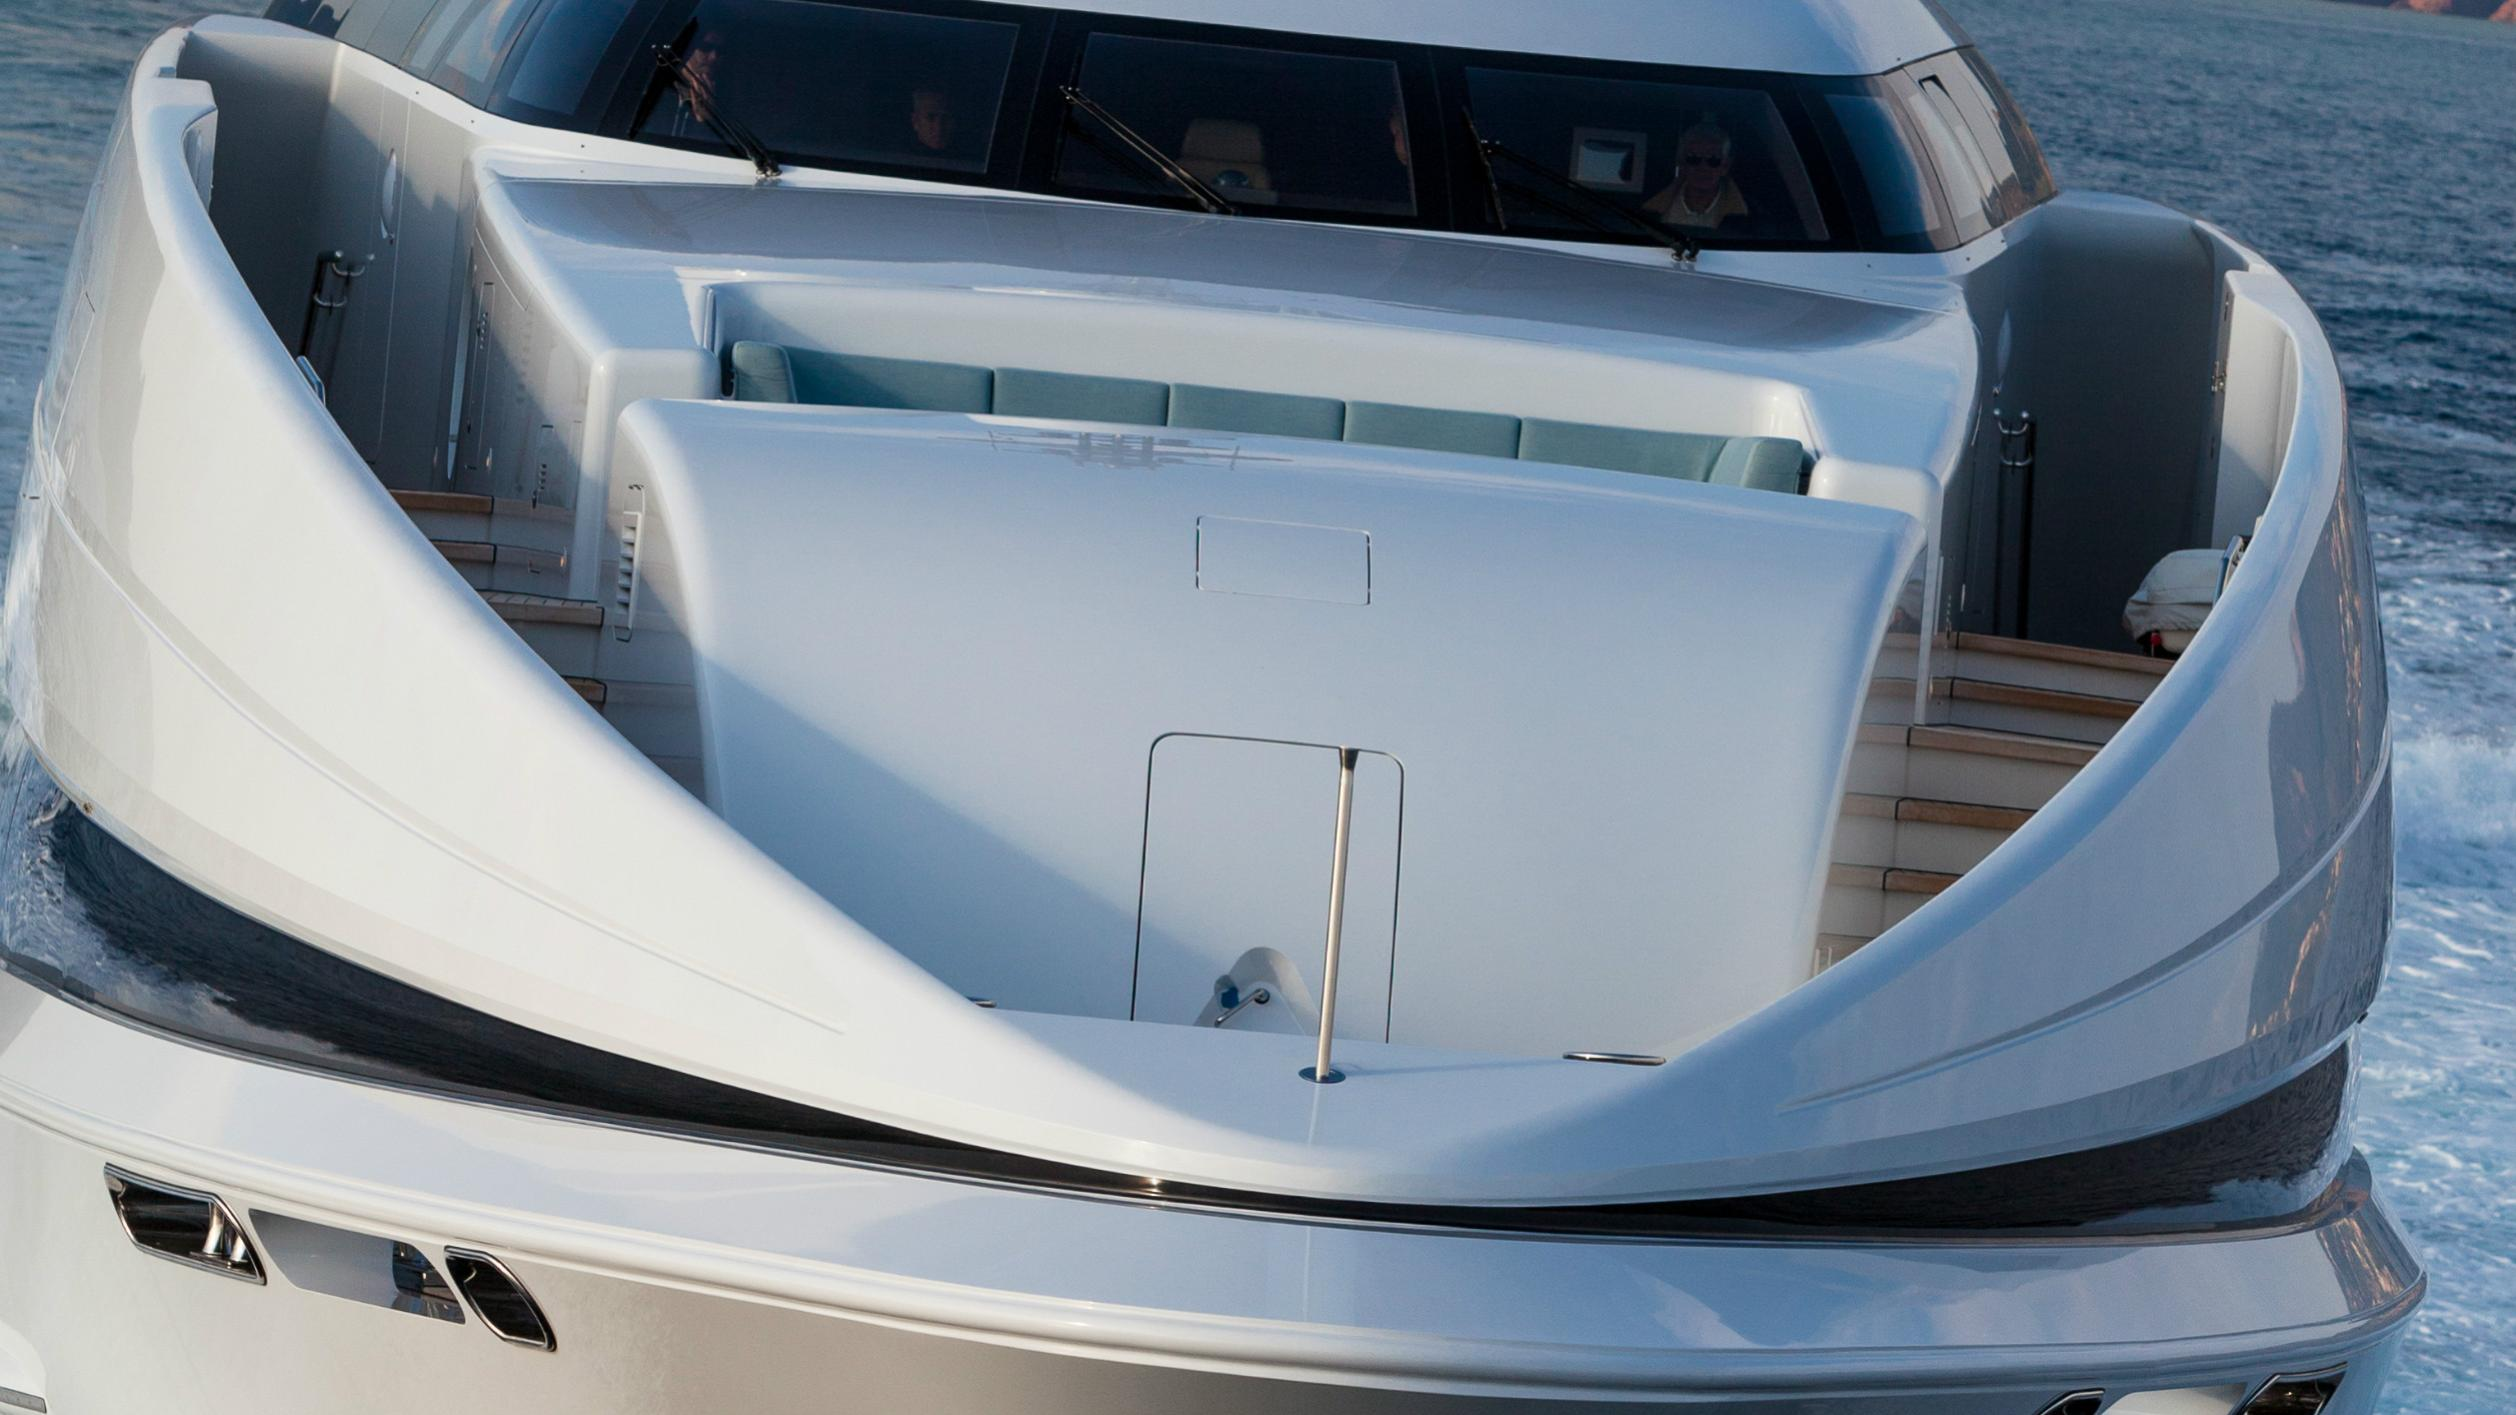 crazy-me-motor-yacht-heesen-2013-50m-bow-detail